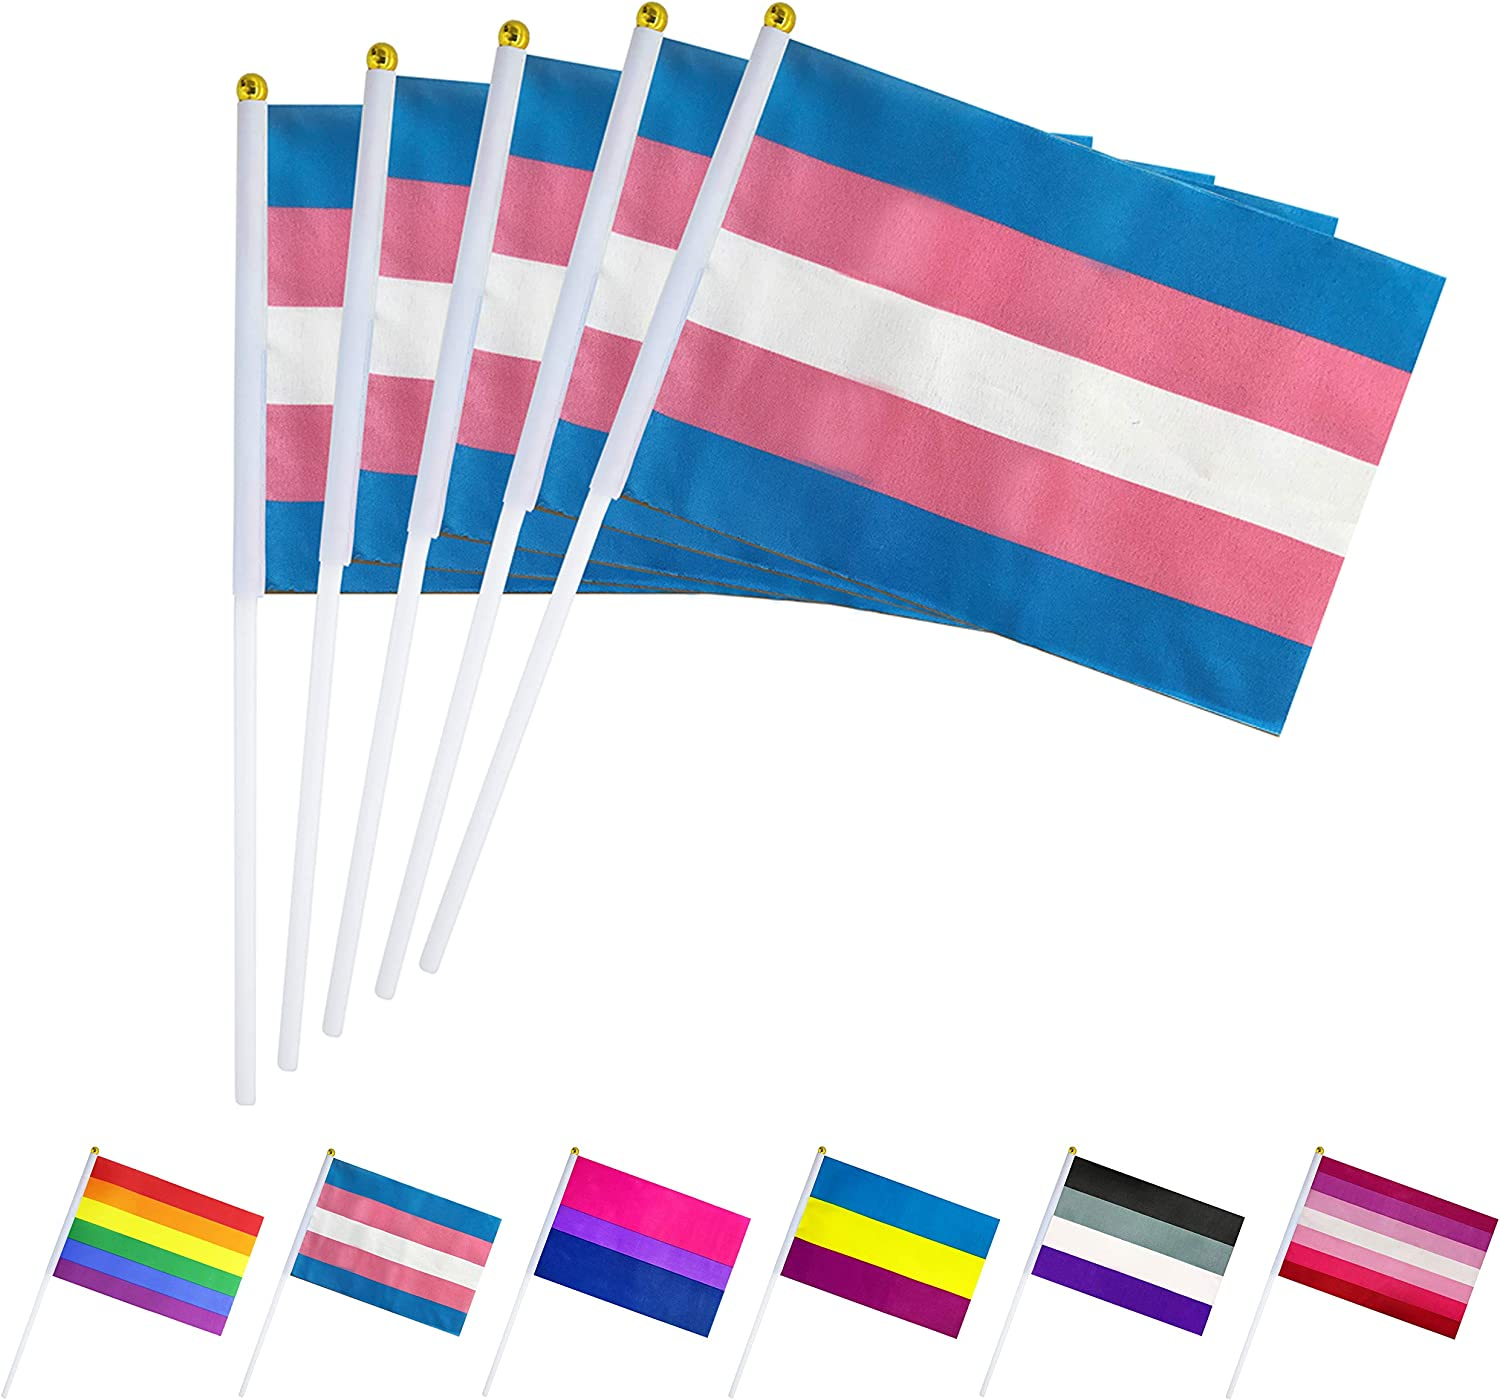 Lovevc 50 Pack Small Mini Transgender Trans Pride Flag Lgbt Rainbow Stick Flags Banner Transgender Rainbow Pride Party Decorations Supplies Amazon Co Uk Garden Outdoors